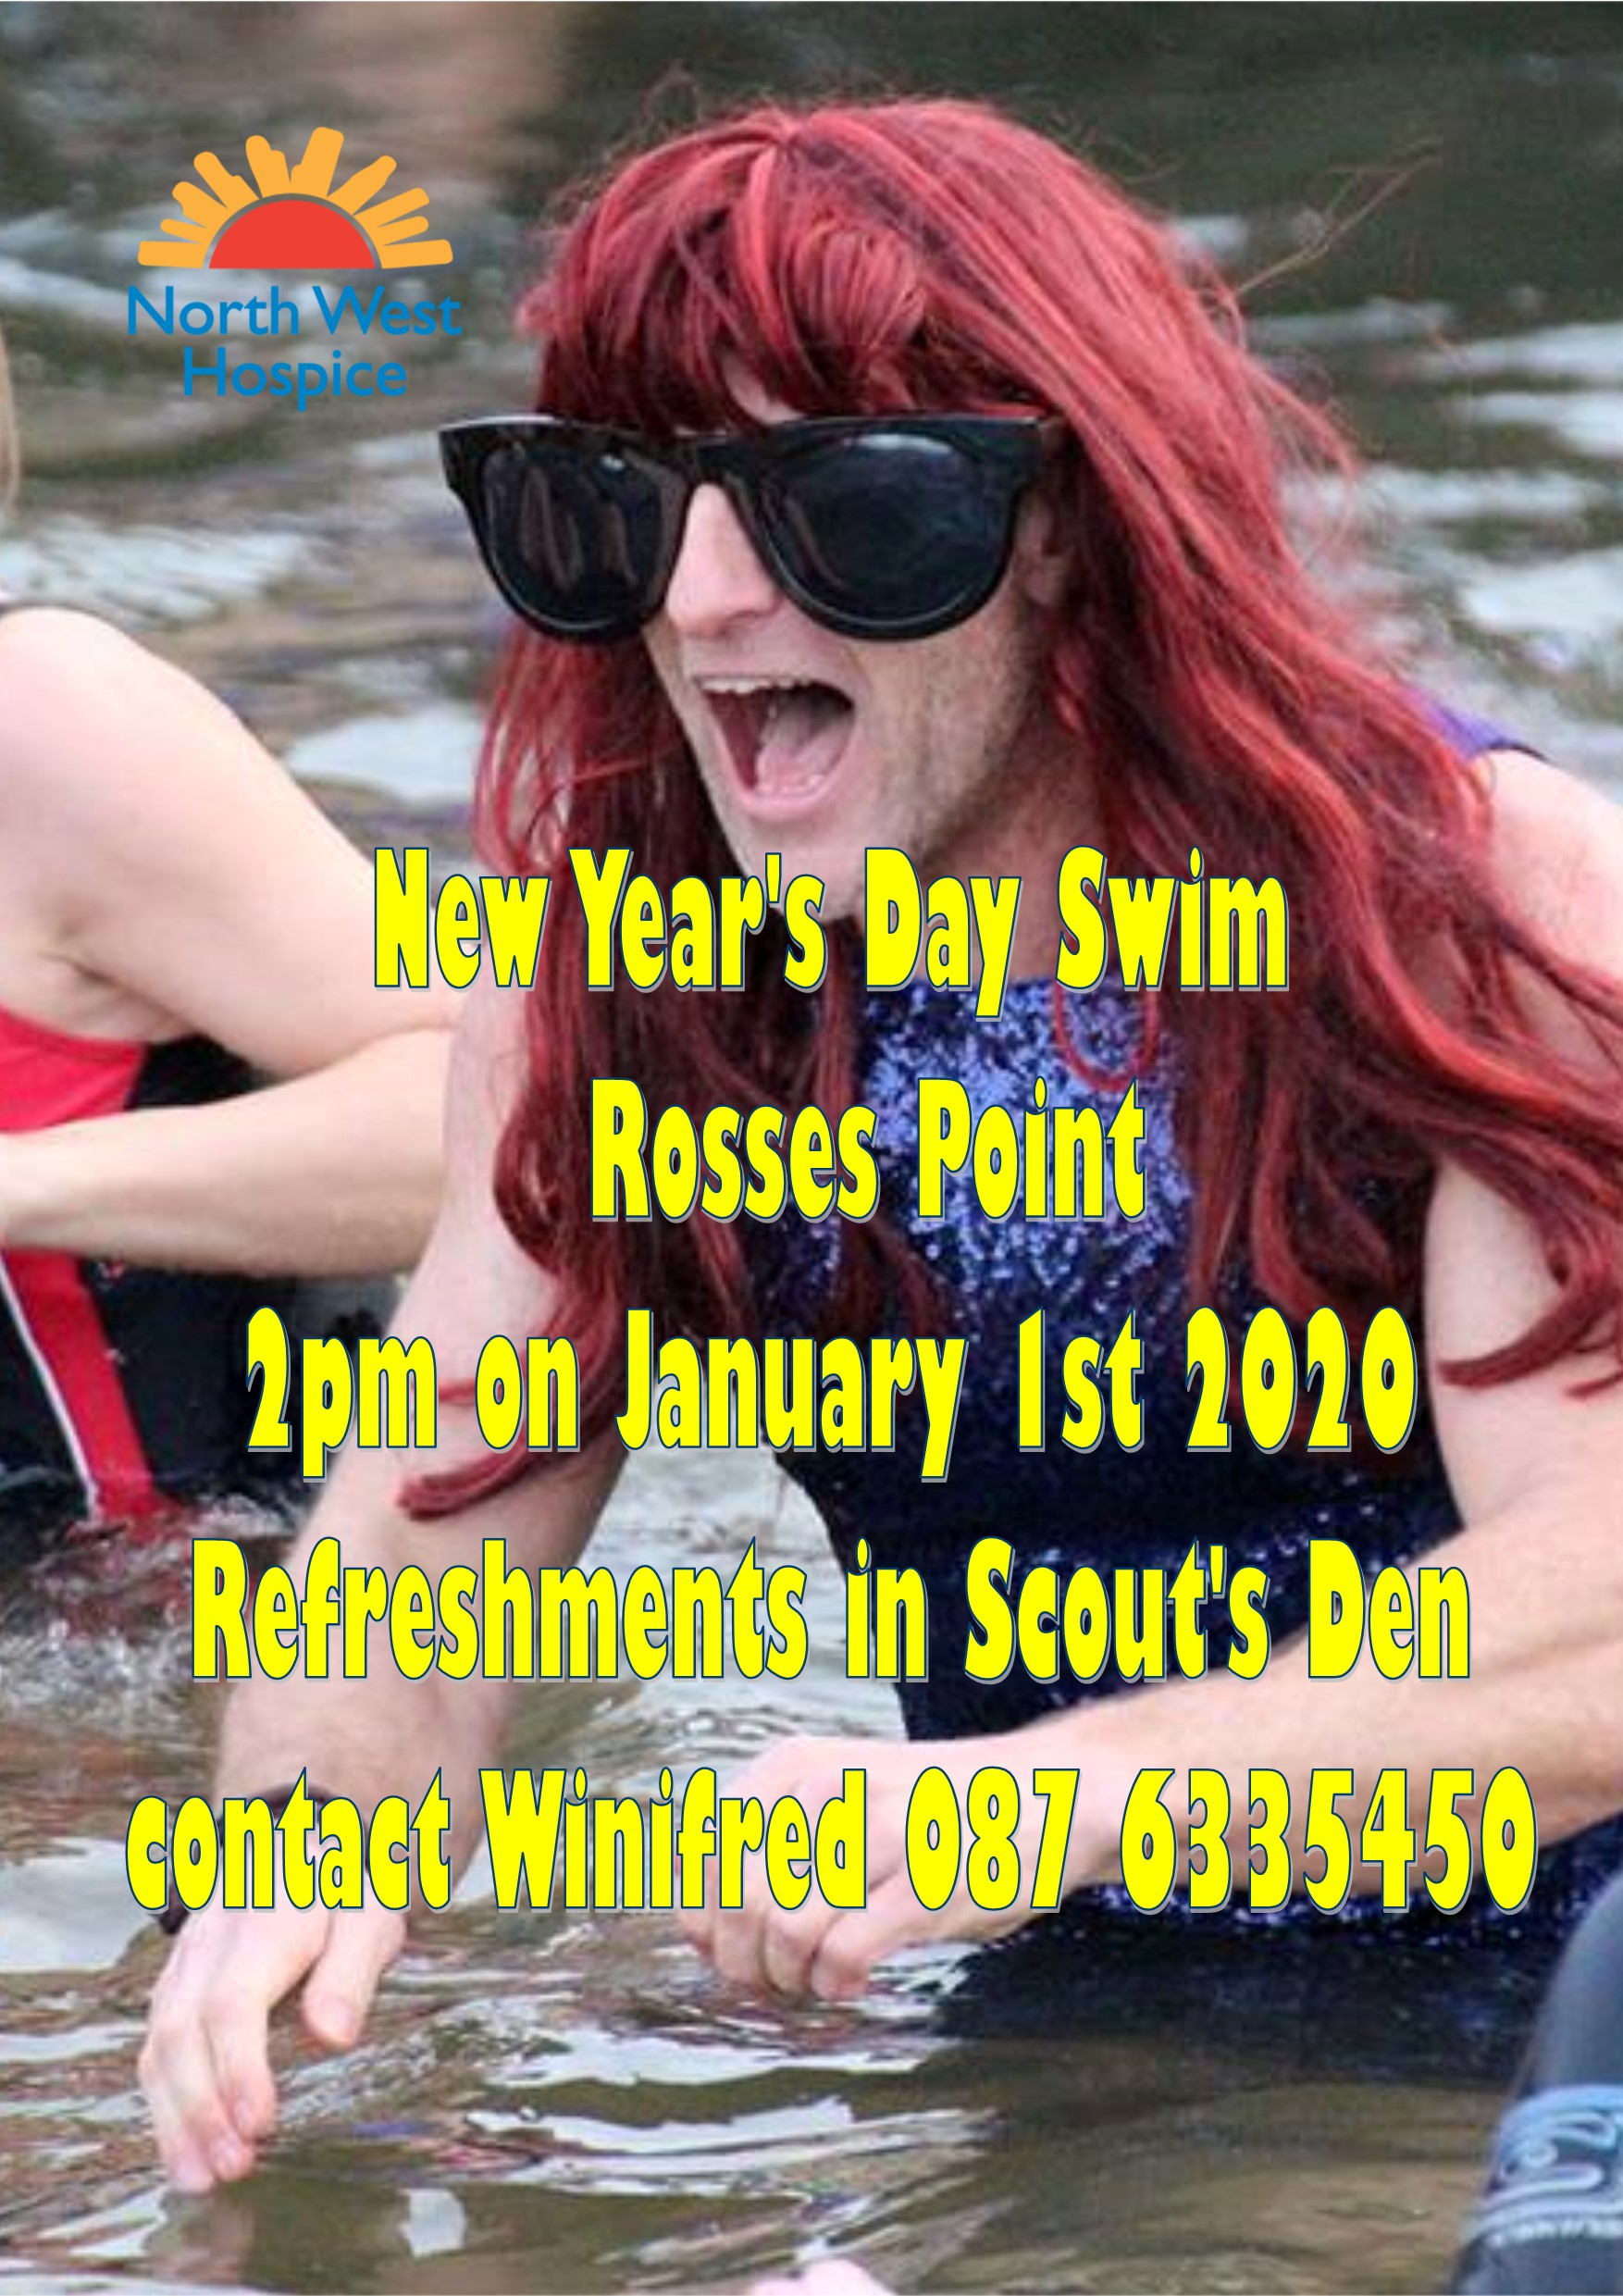 New Year's Day Swim @ Rosses Point in aid of North West Hospice